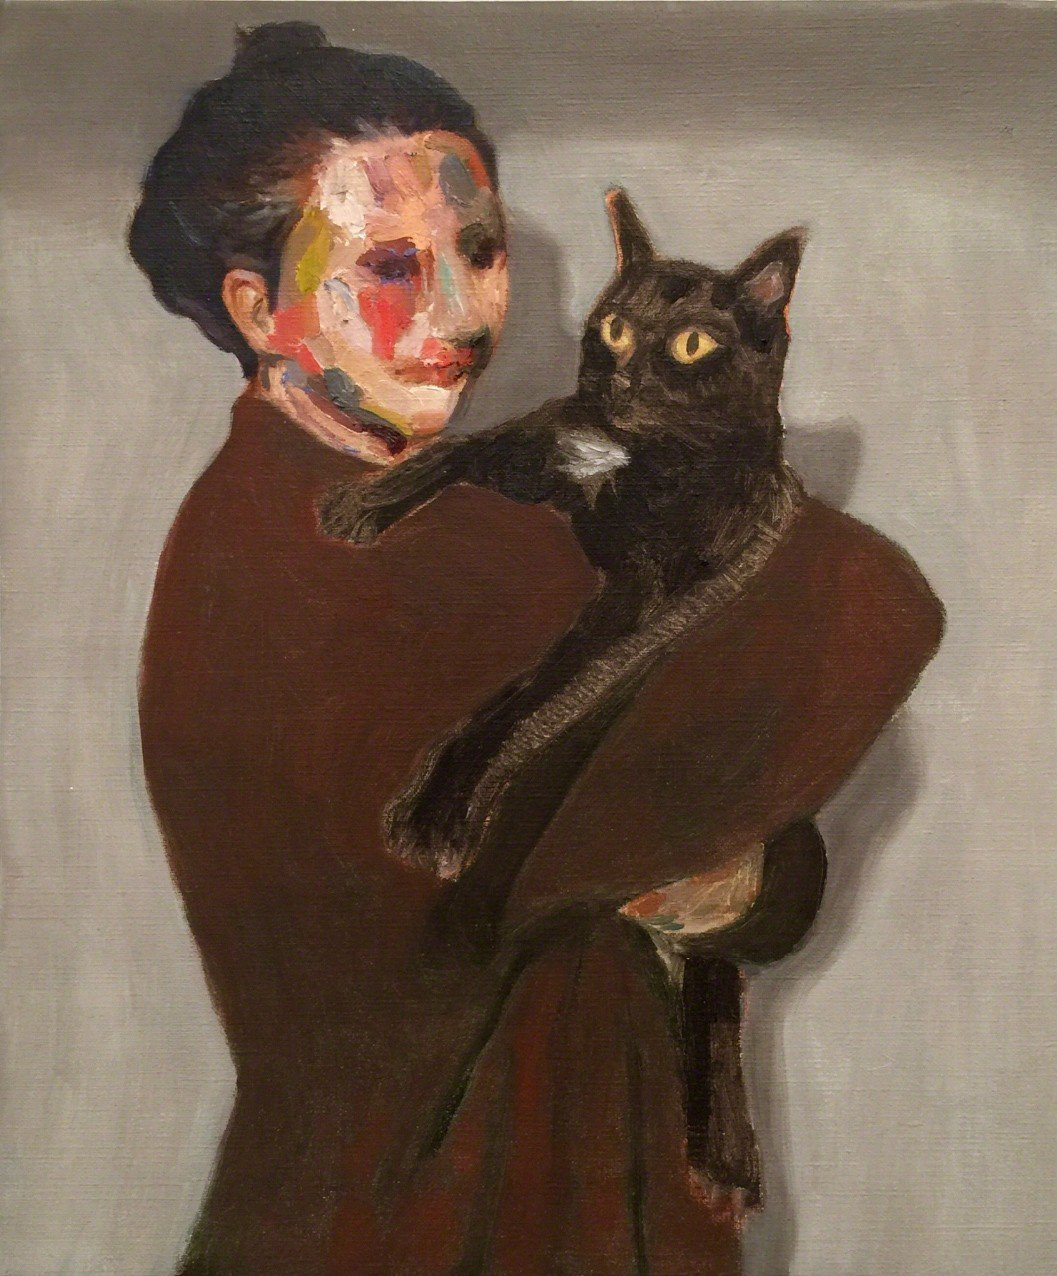 Noe and Her Cat